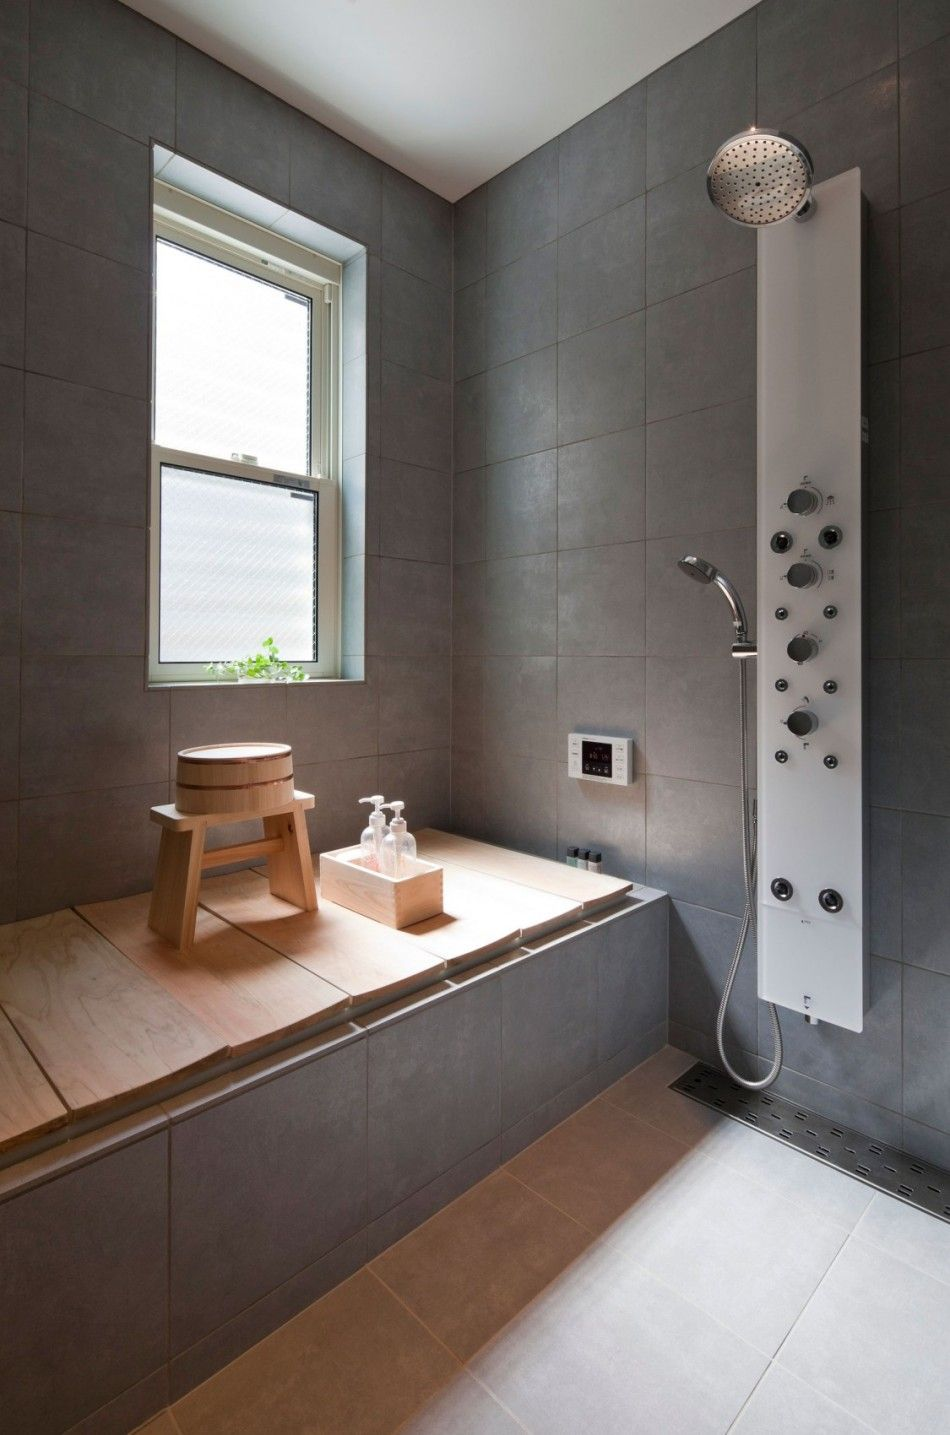 Badezimmer In Japan I Want This Japanese Bathroom In My American Home Japan Bathroom